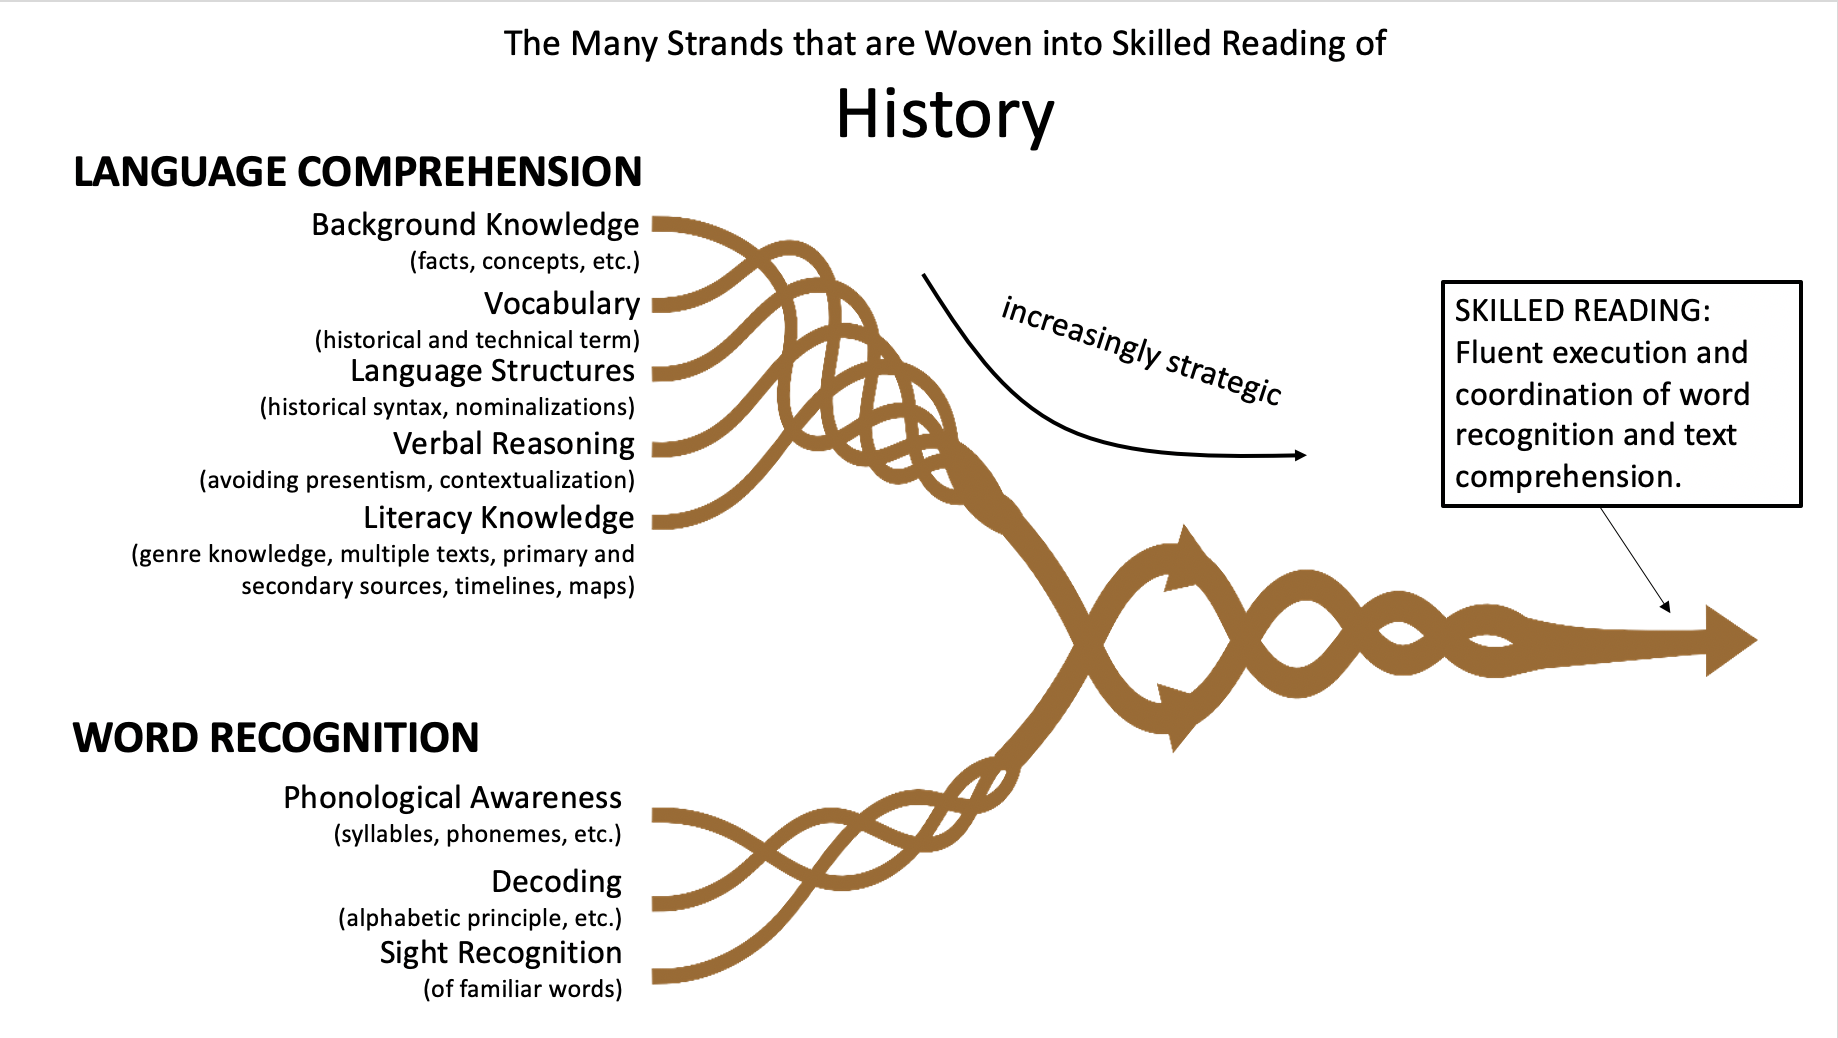 The Many Strands of Skilled Reading in History